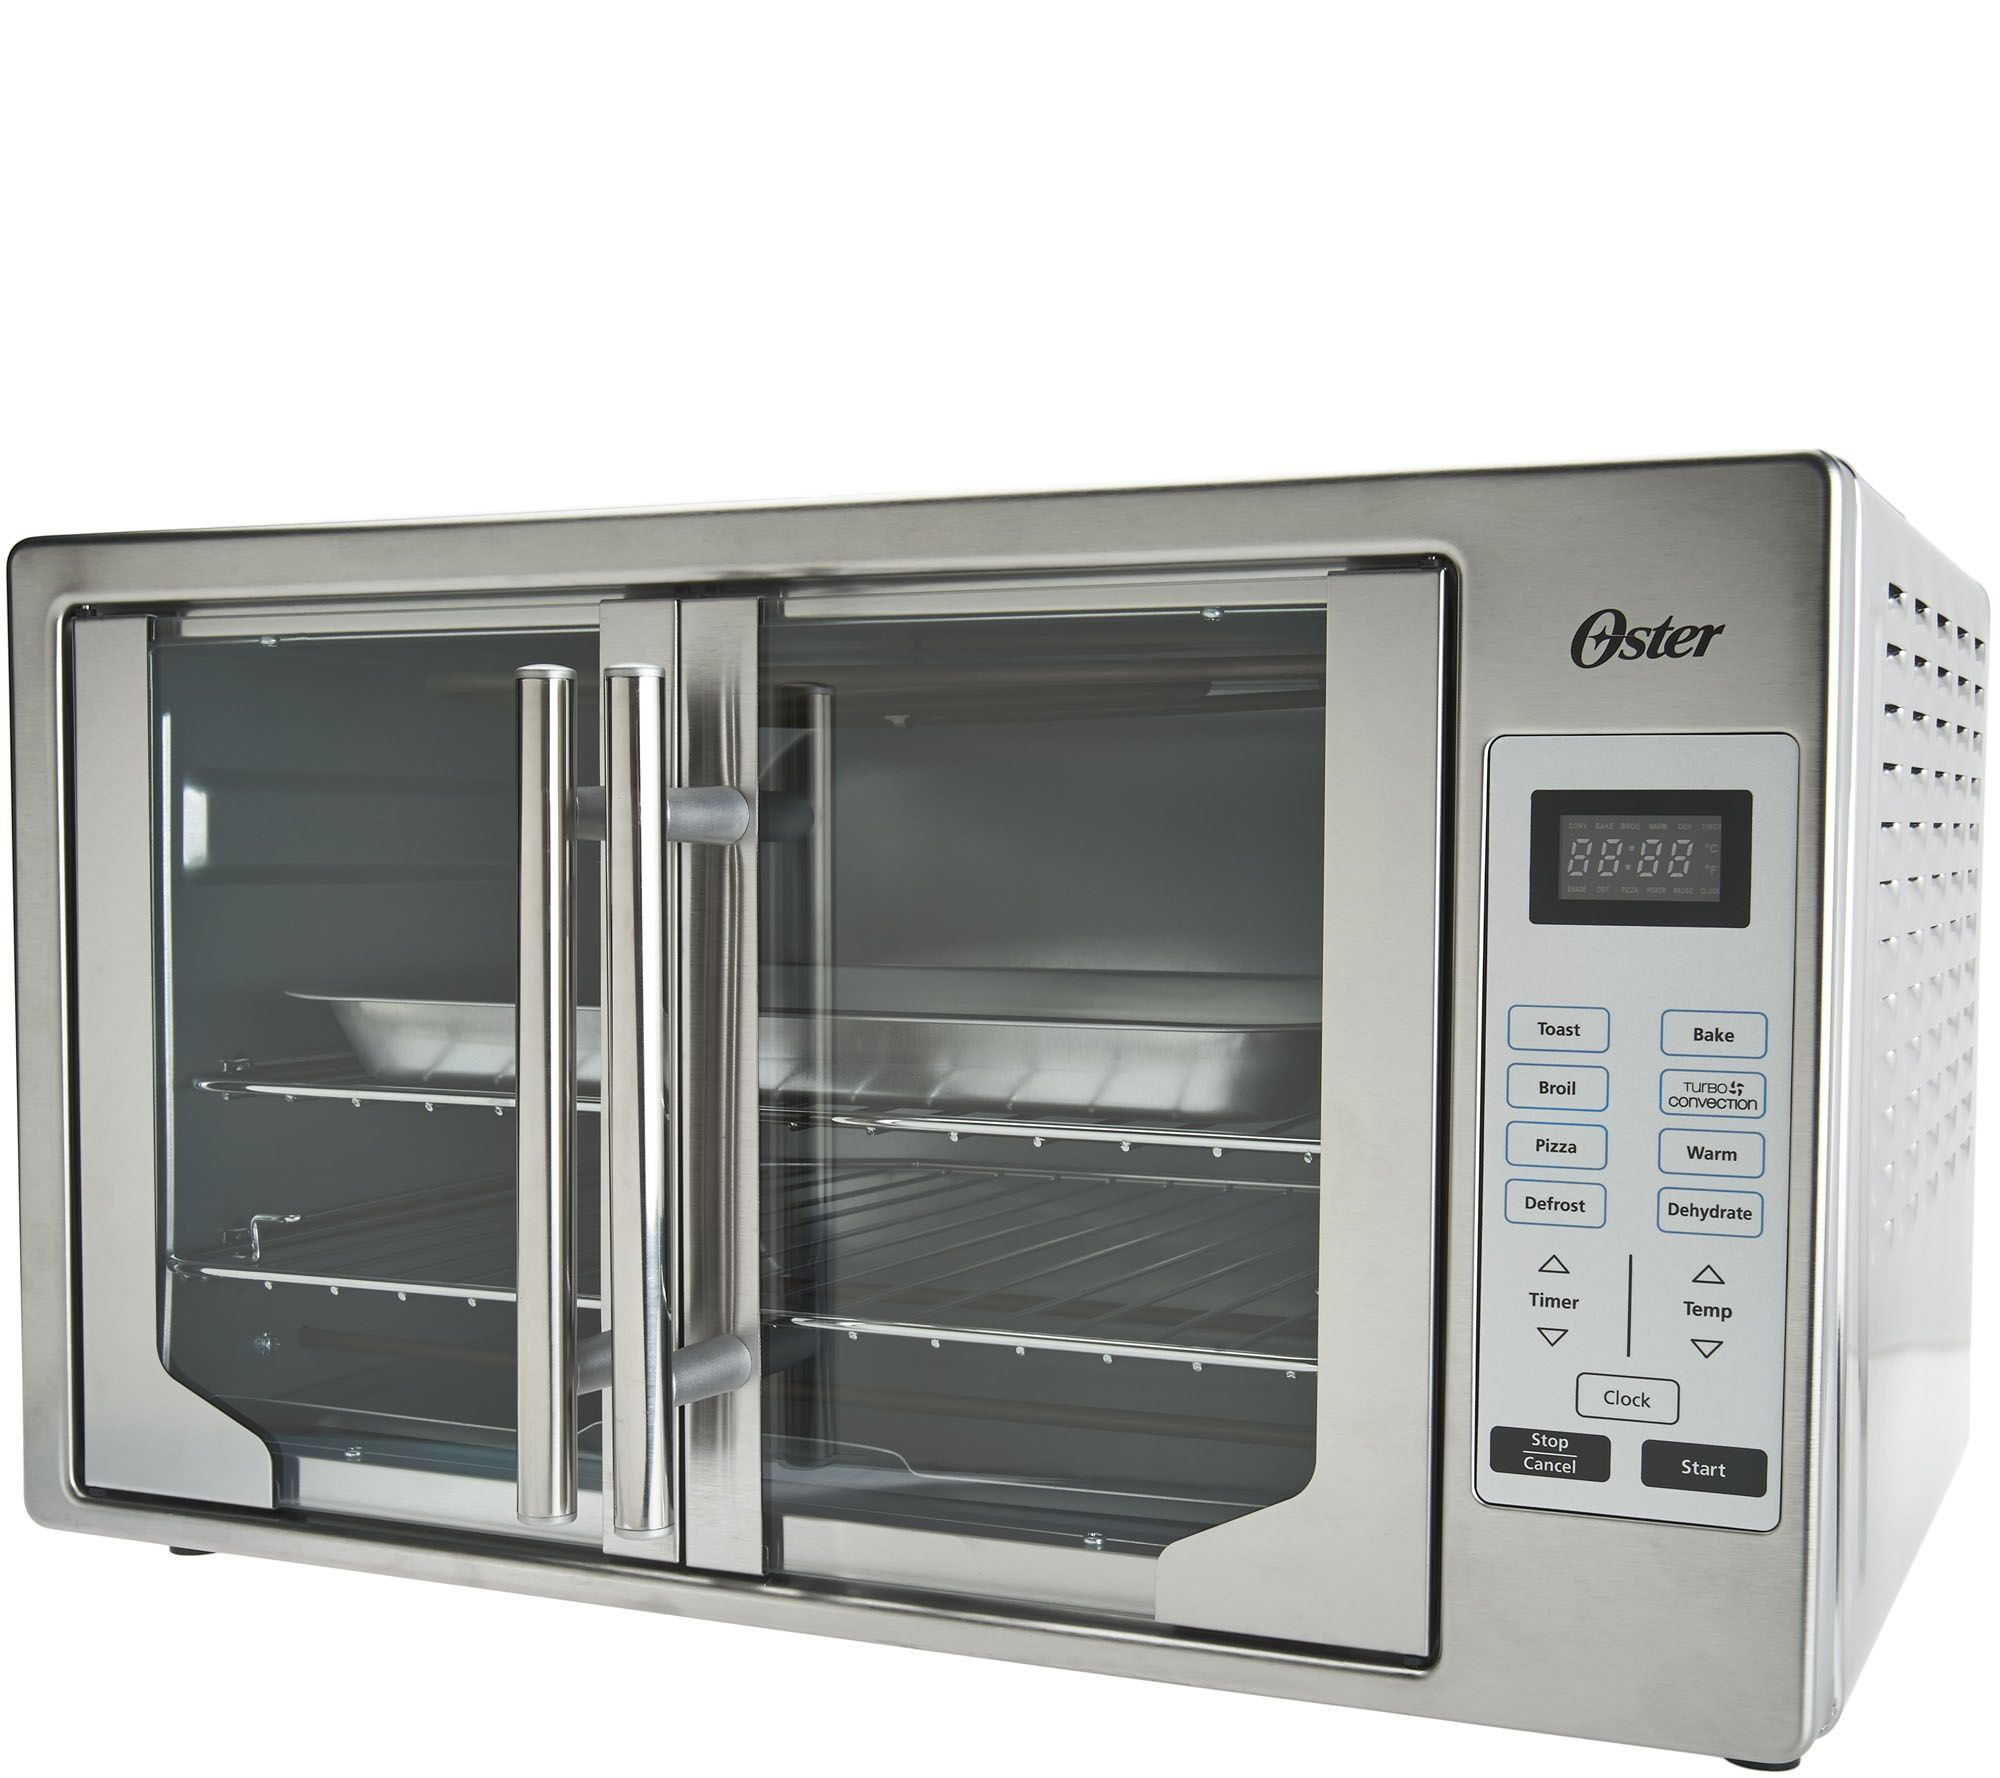 Oster Xl Digital Convection Oven Countertop Oven Convection Oven French Door Oven